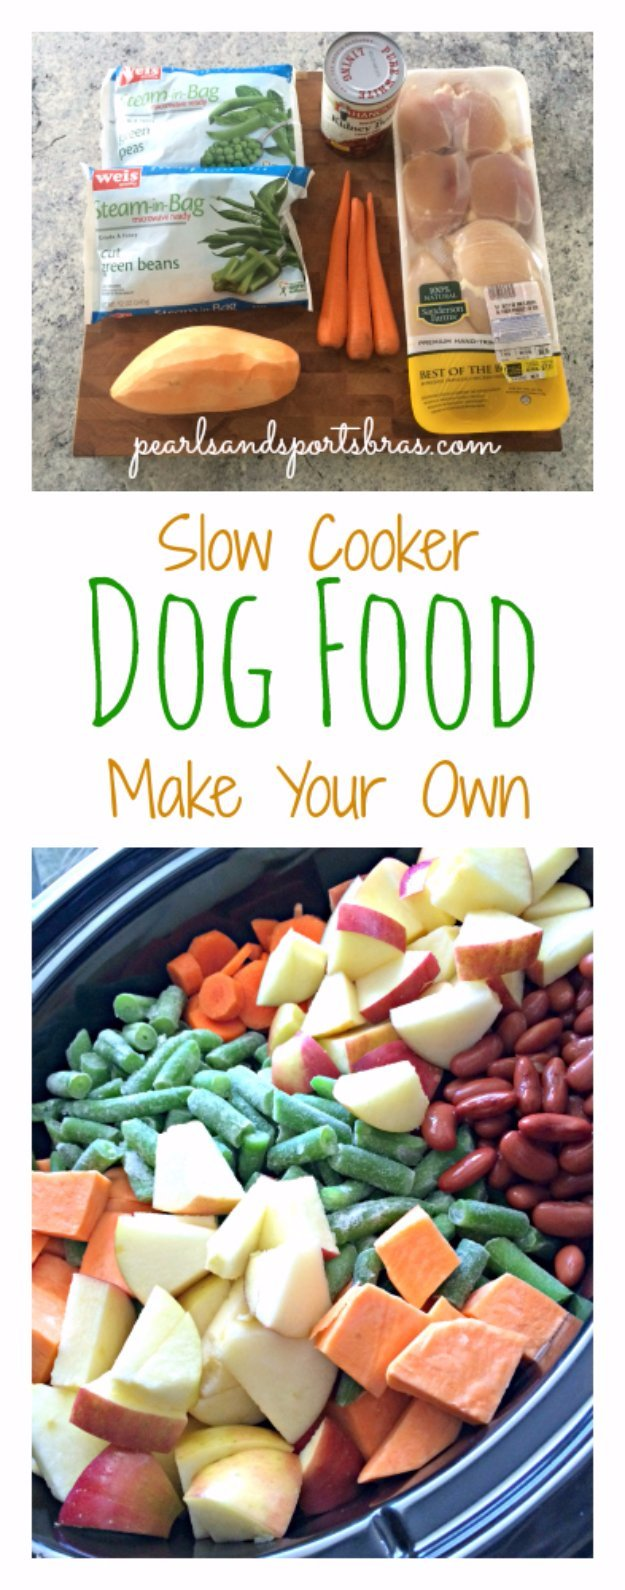 DIY Slow Cooker Dog Food